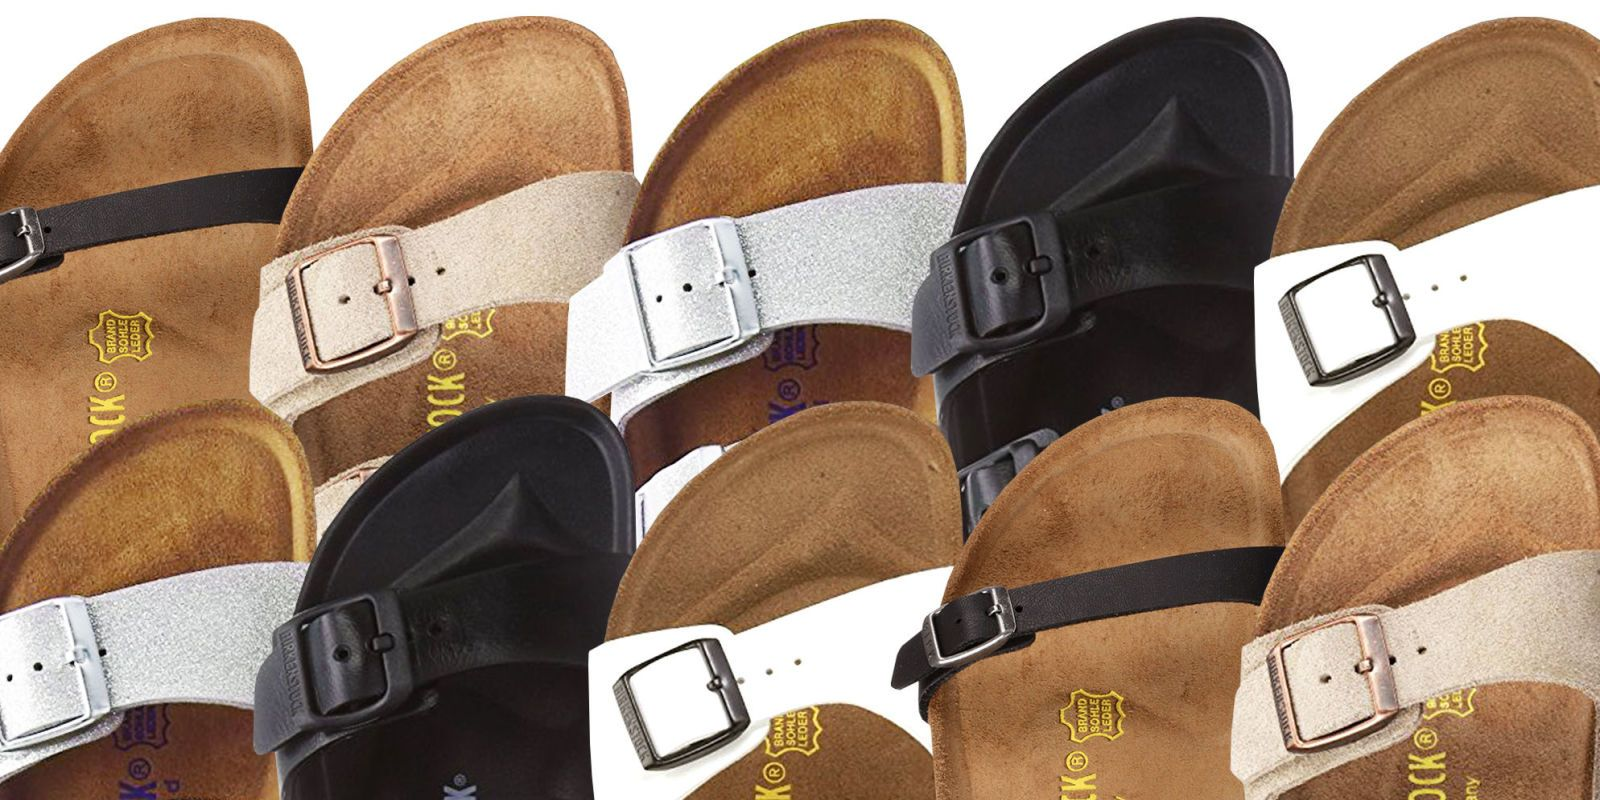 cheapest place to get birkenstocks